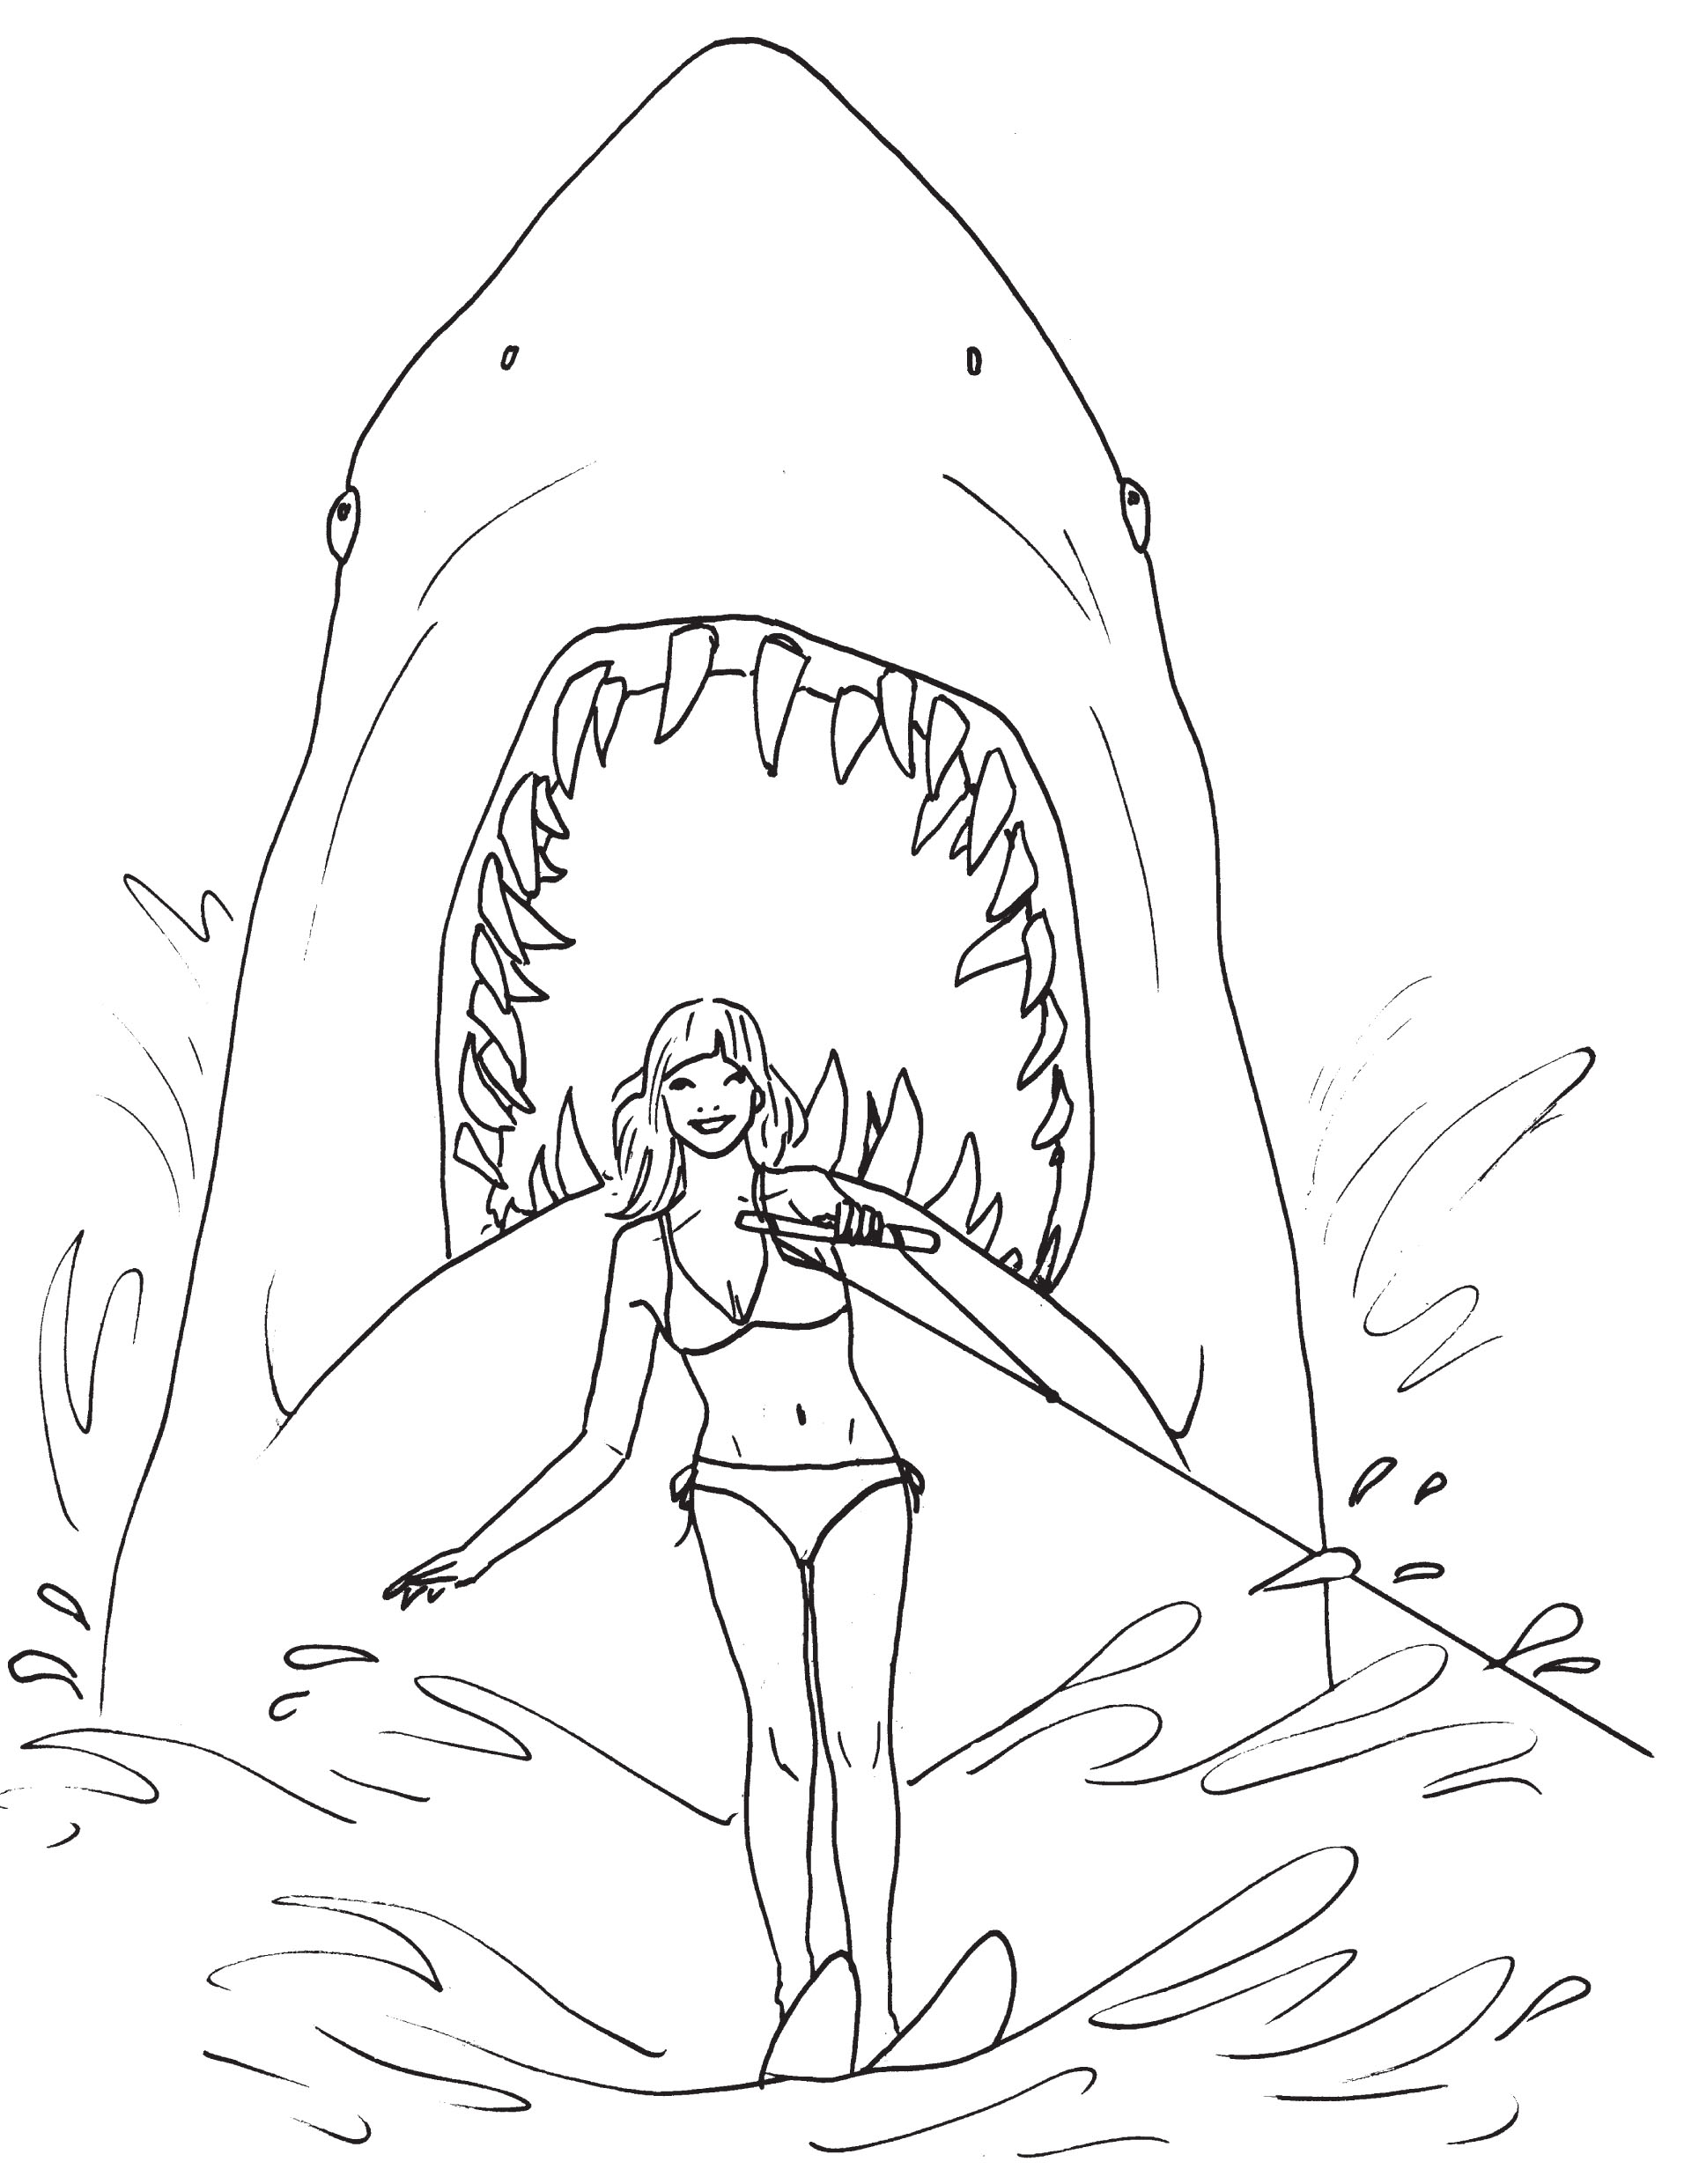 Great white shark coloring pages to download and print for for Free printable shark coloring pages